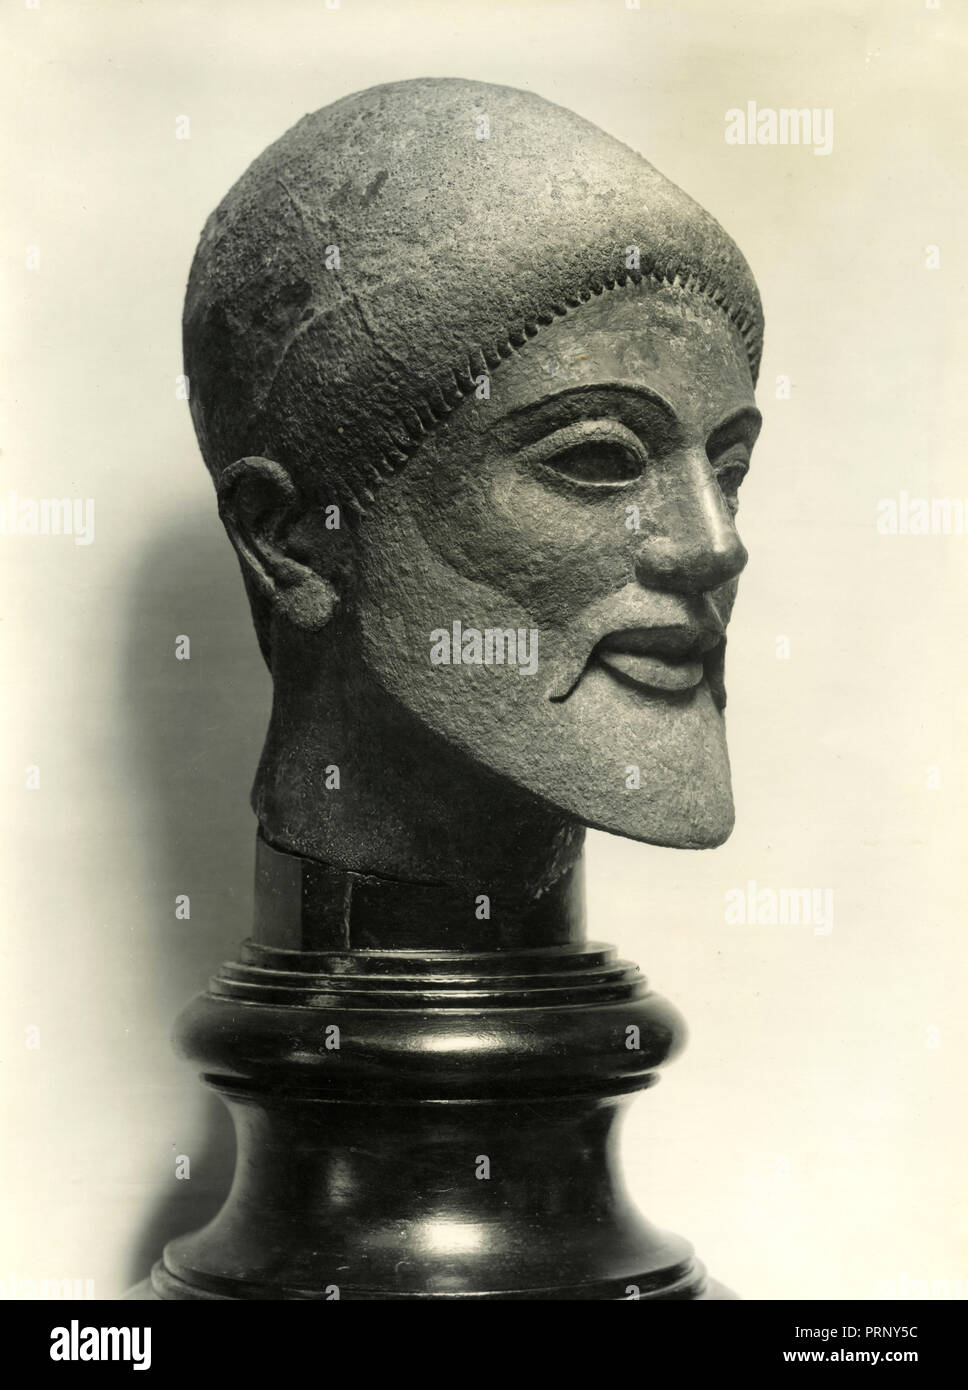 Archaic marble head of man, Greece 1930s - Stock Image